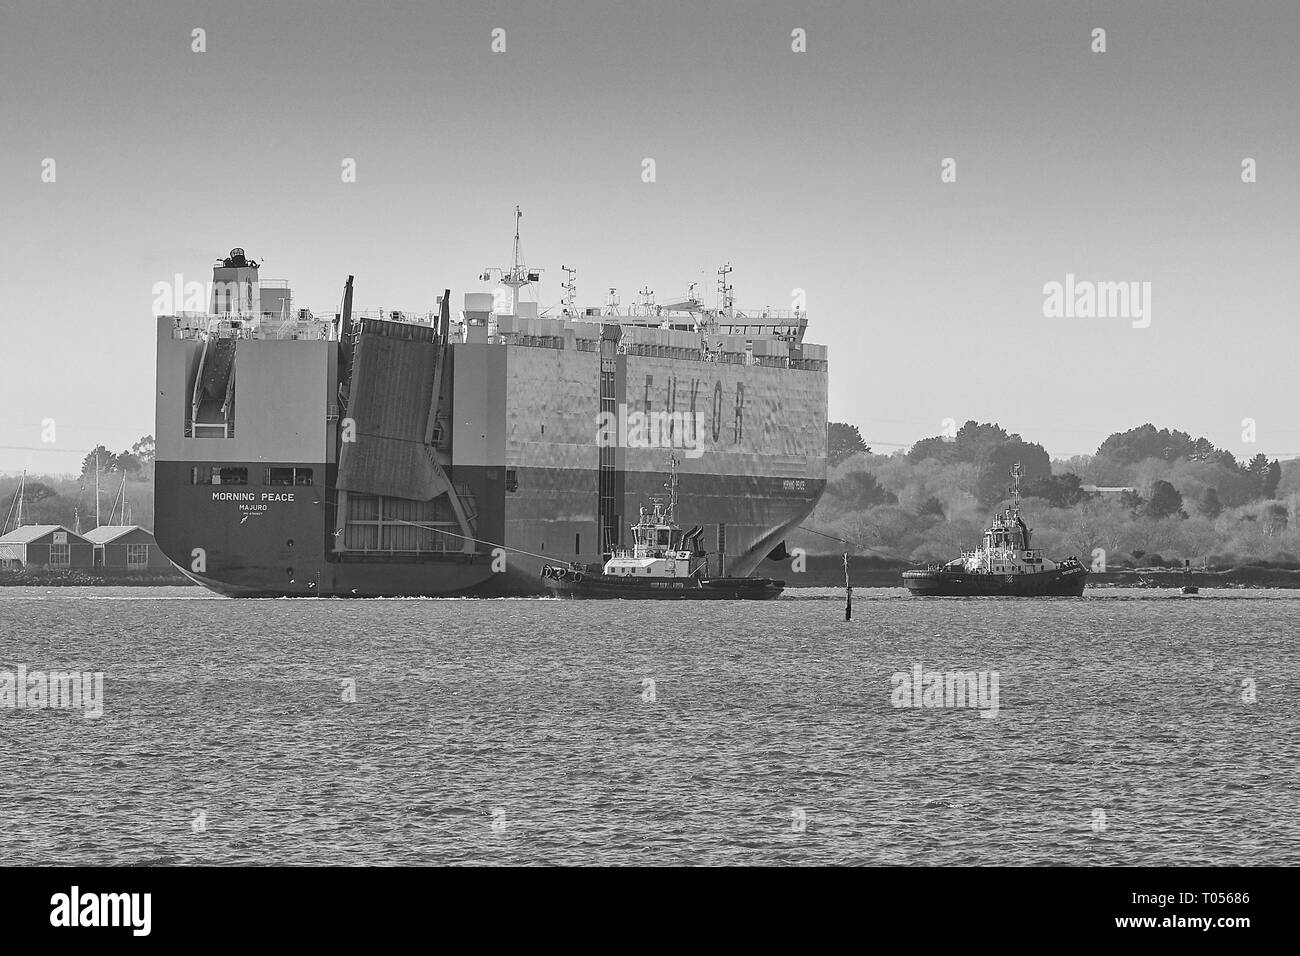 Black & White Image Of The EUKOR Car Carrier Ship, MORNING PEACE, Enters The Port Of Southampton, UK. - Stock Image